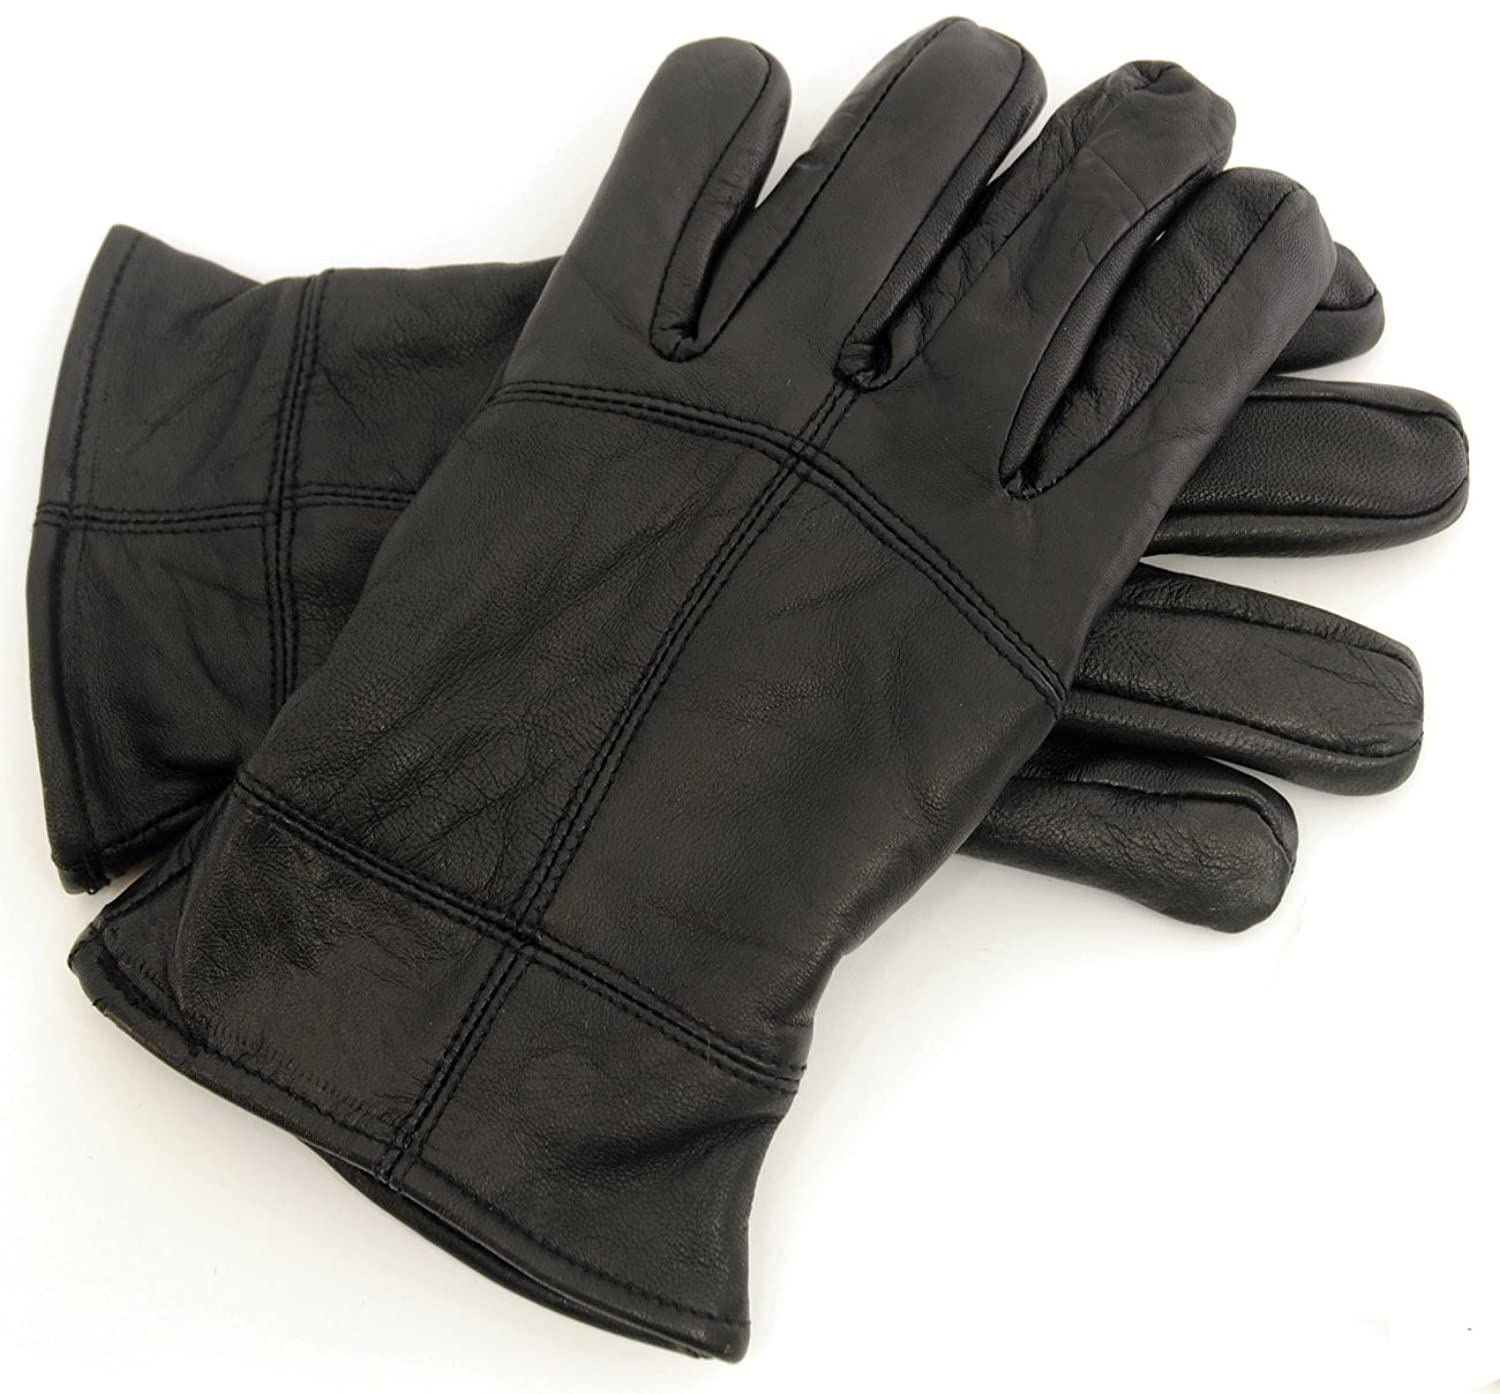 Best mens leather gloves uk - Mens Thinsulate Lined Super Soft Fine Leather Warm Winter Gloves